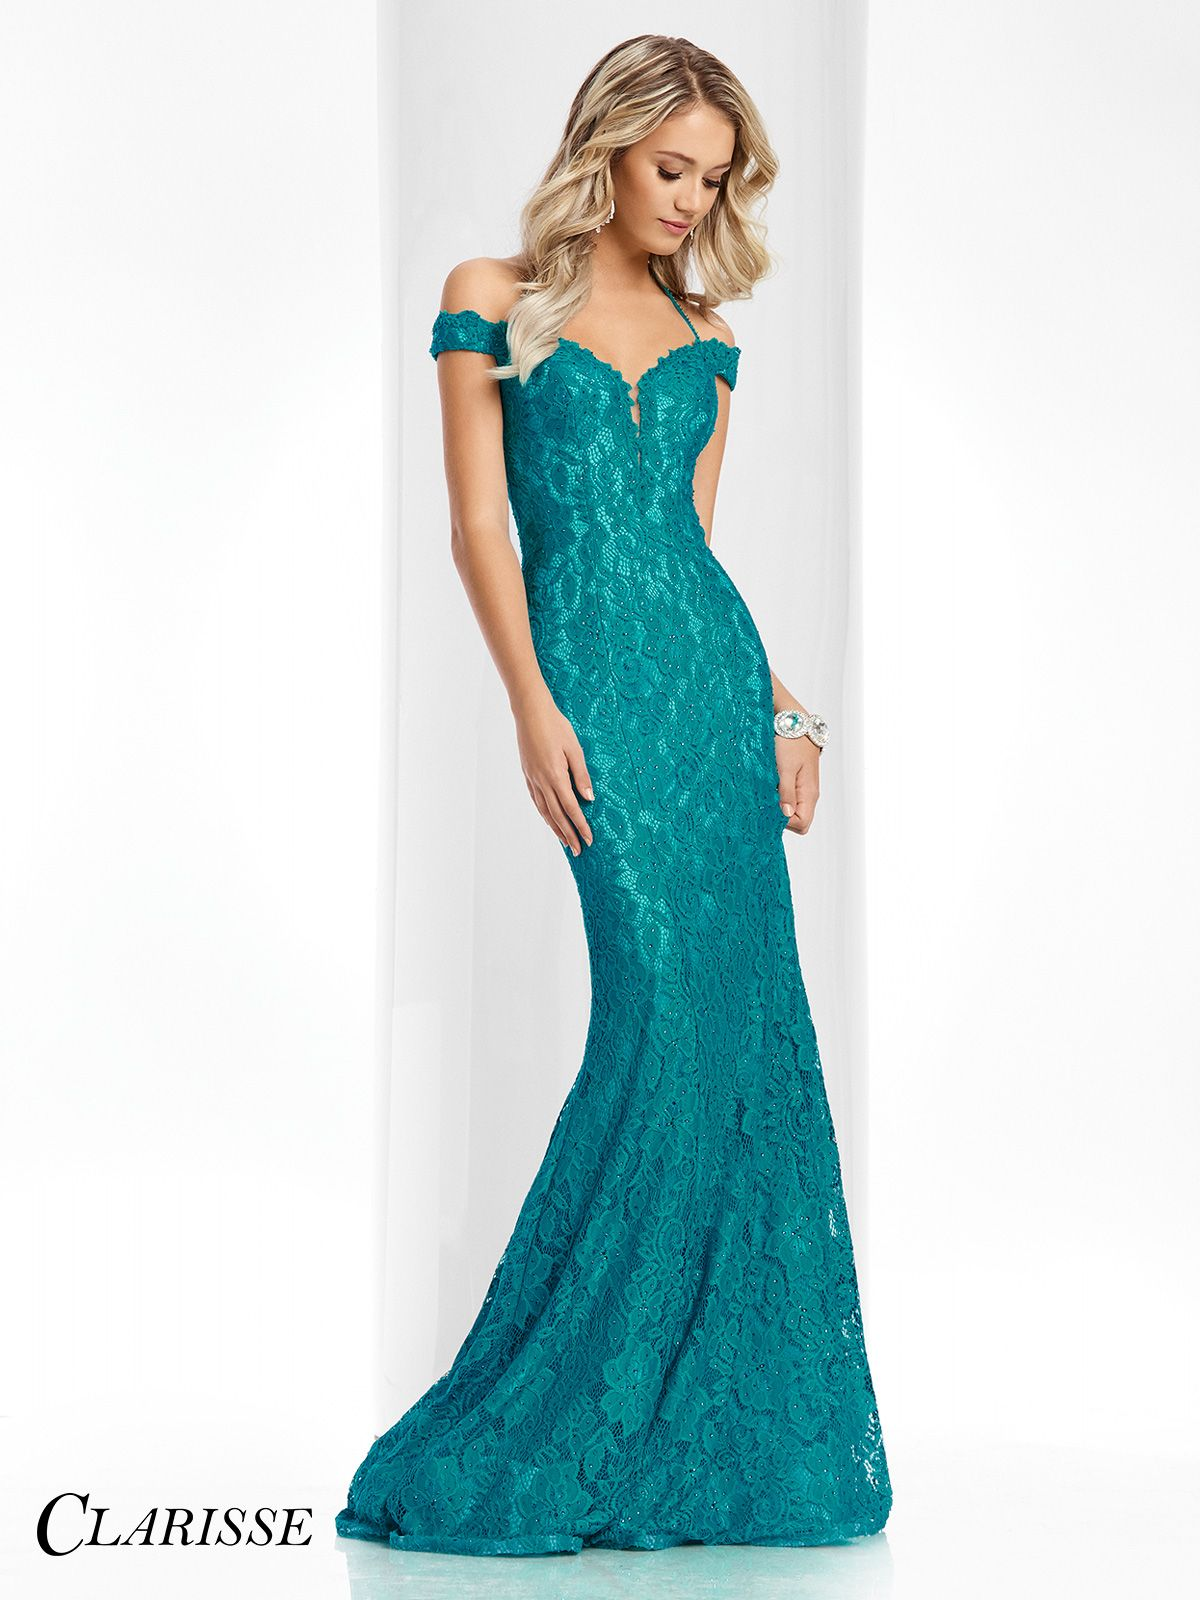 Clarisse Couture Lace Evening Gown 4801 Unique Teal Prom Dress